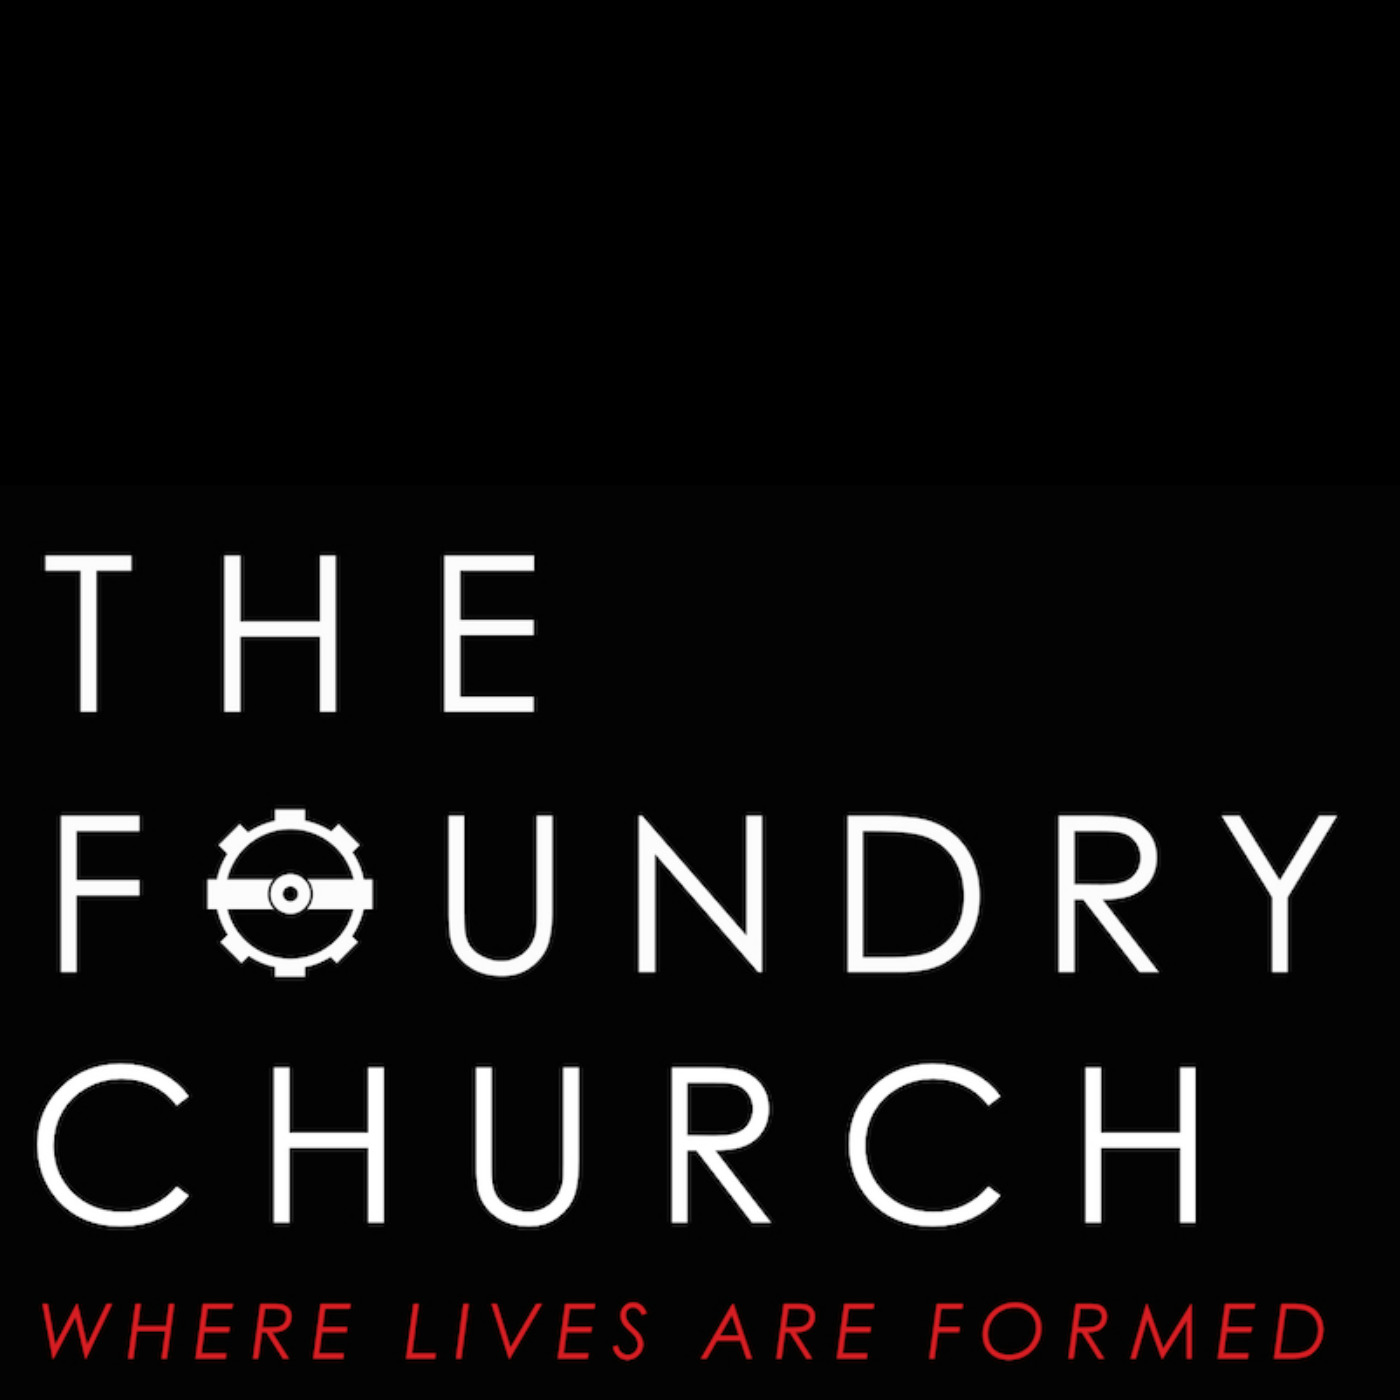 The Foundry Church Morgantown